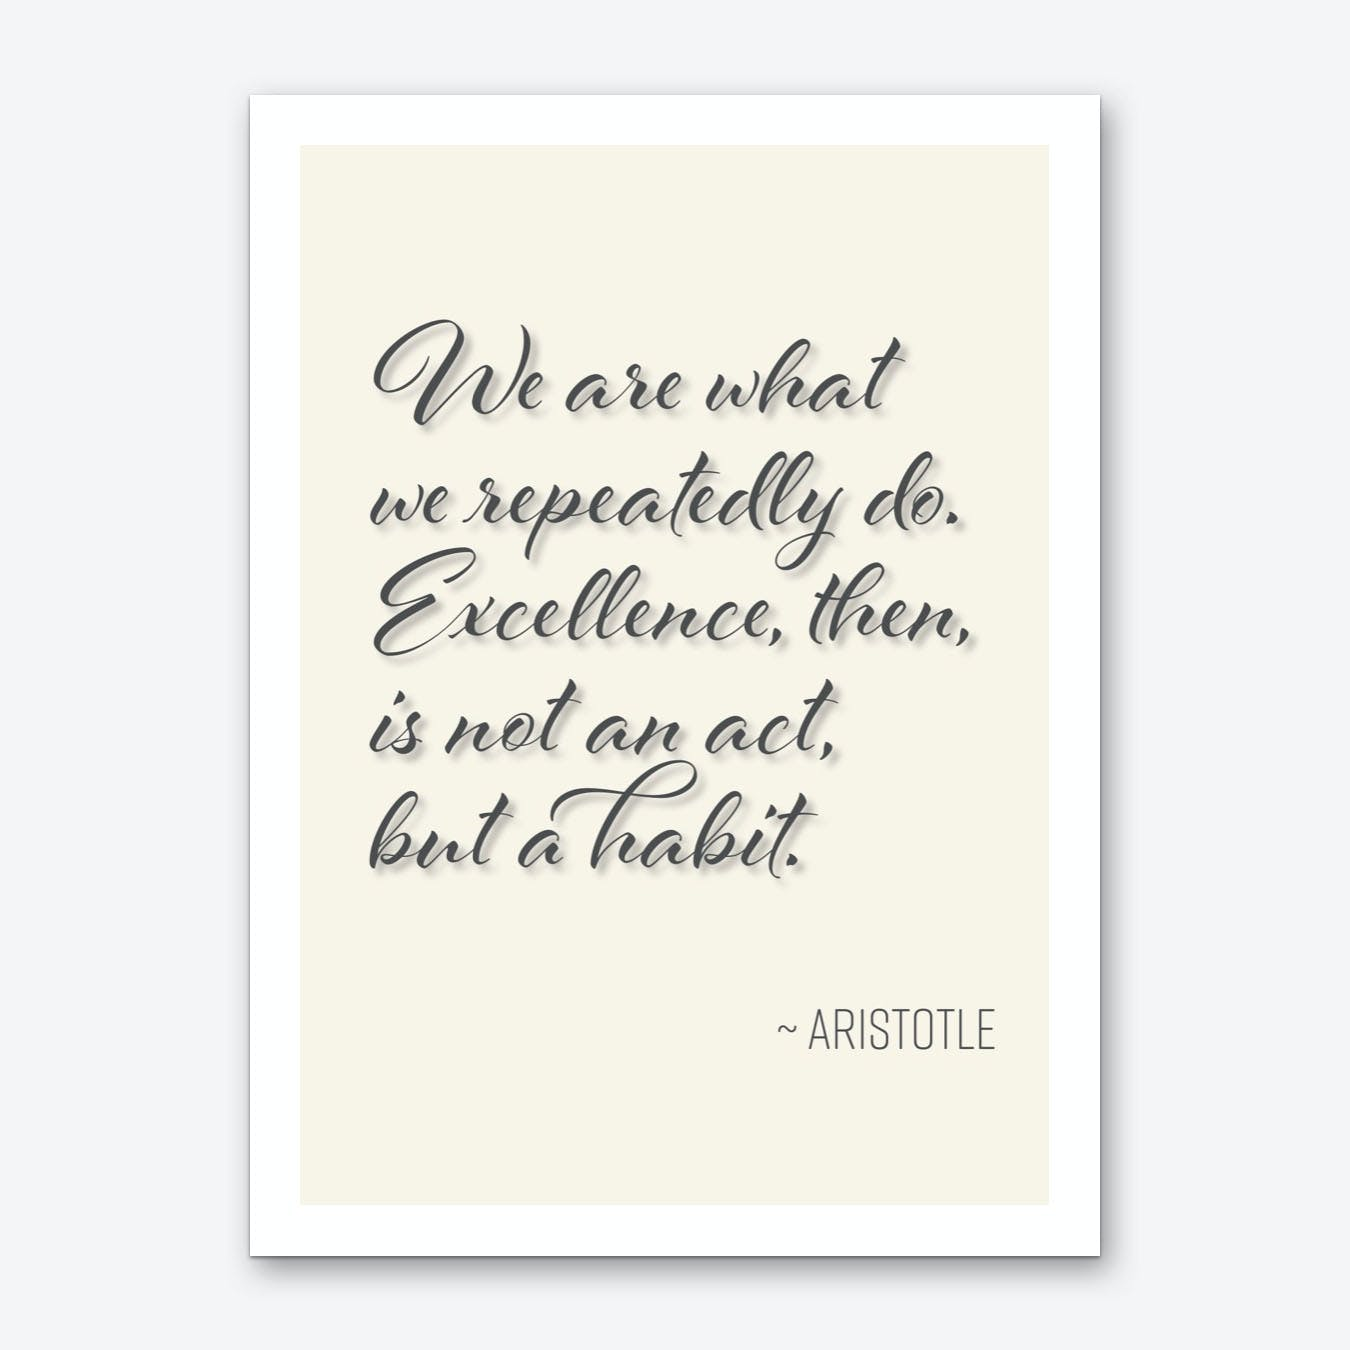 Aristotle Quote on Excellance Art Print